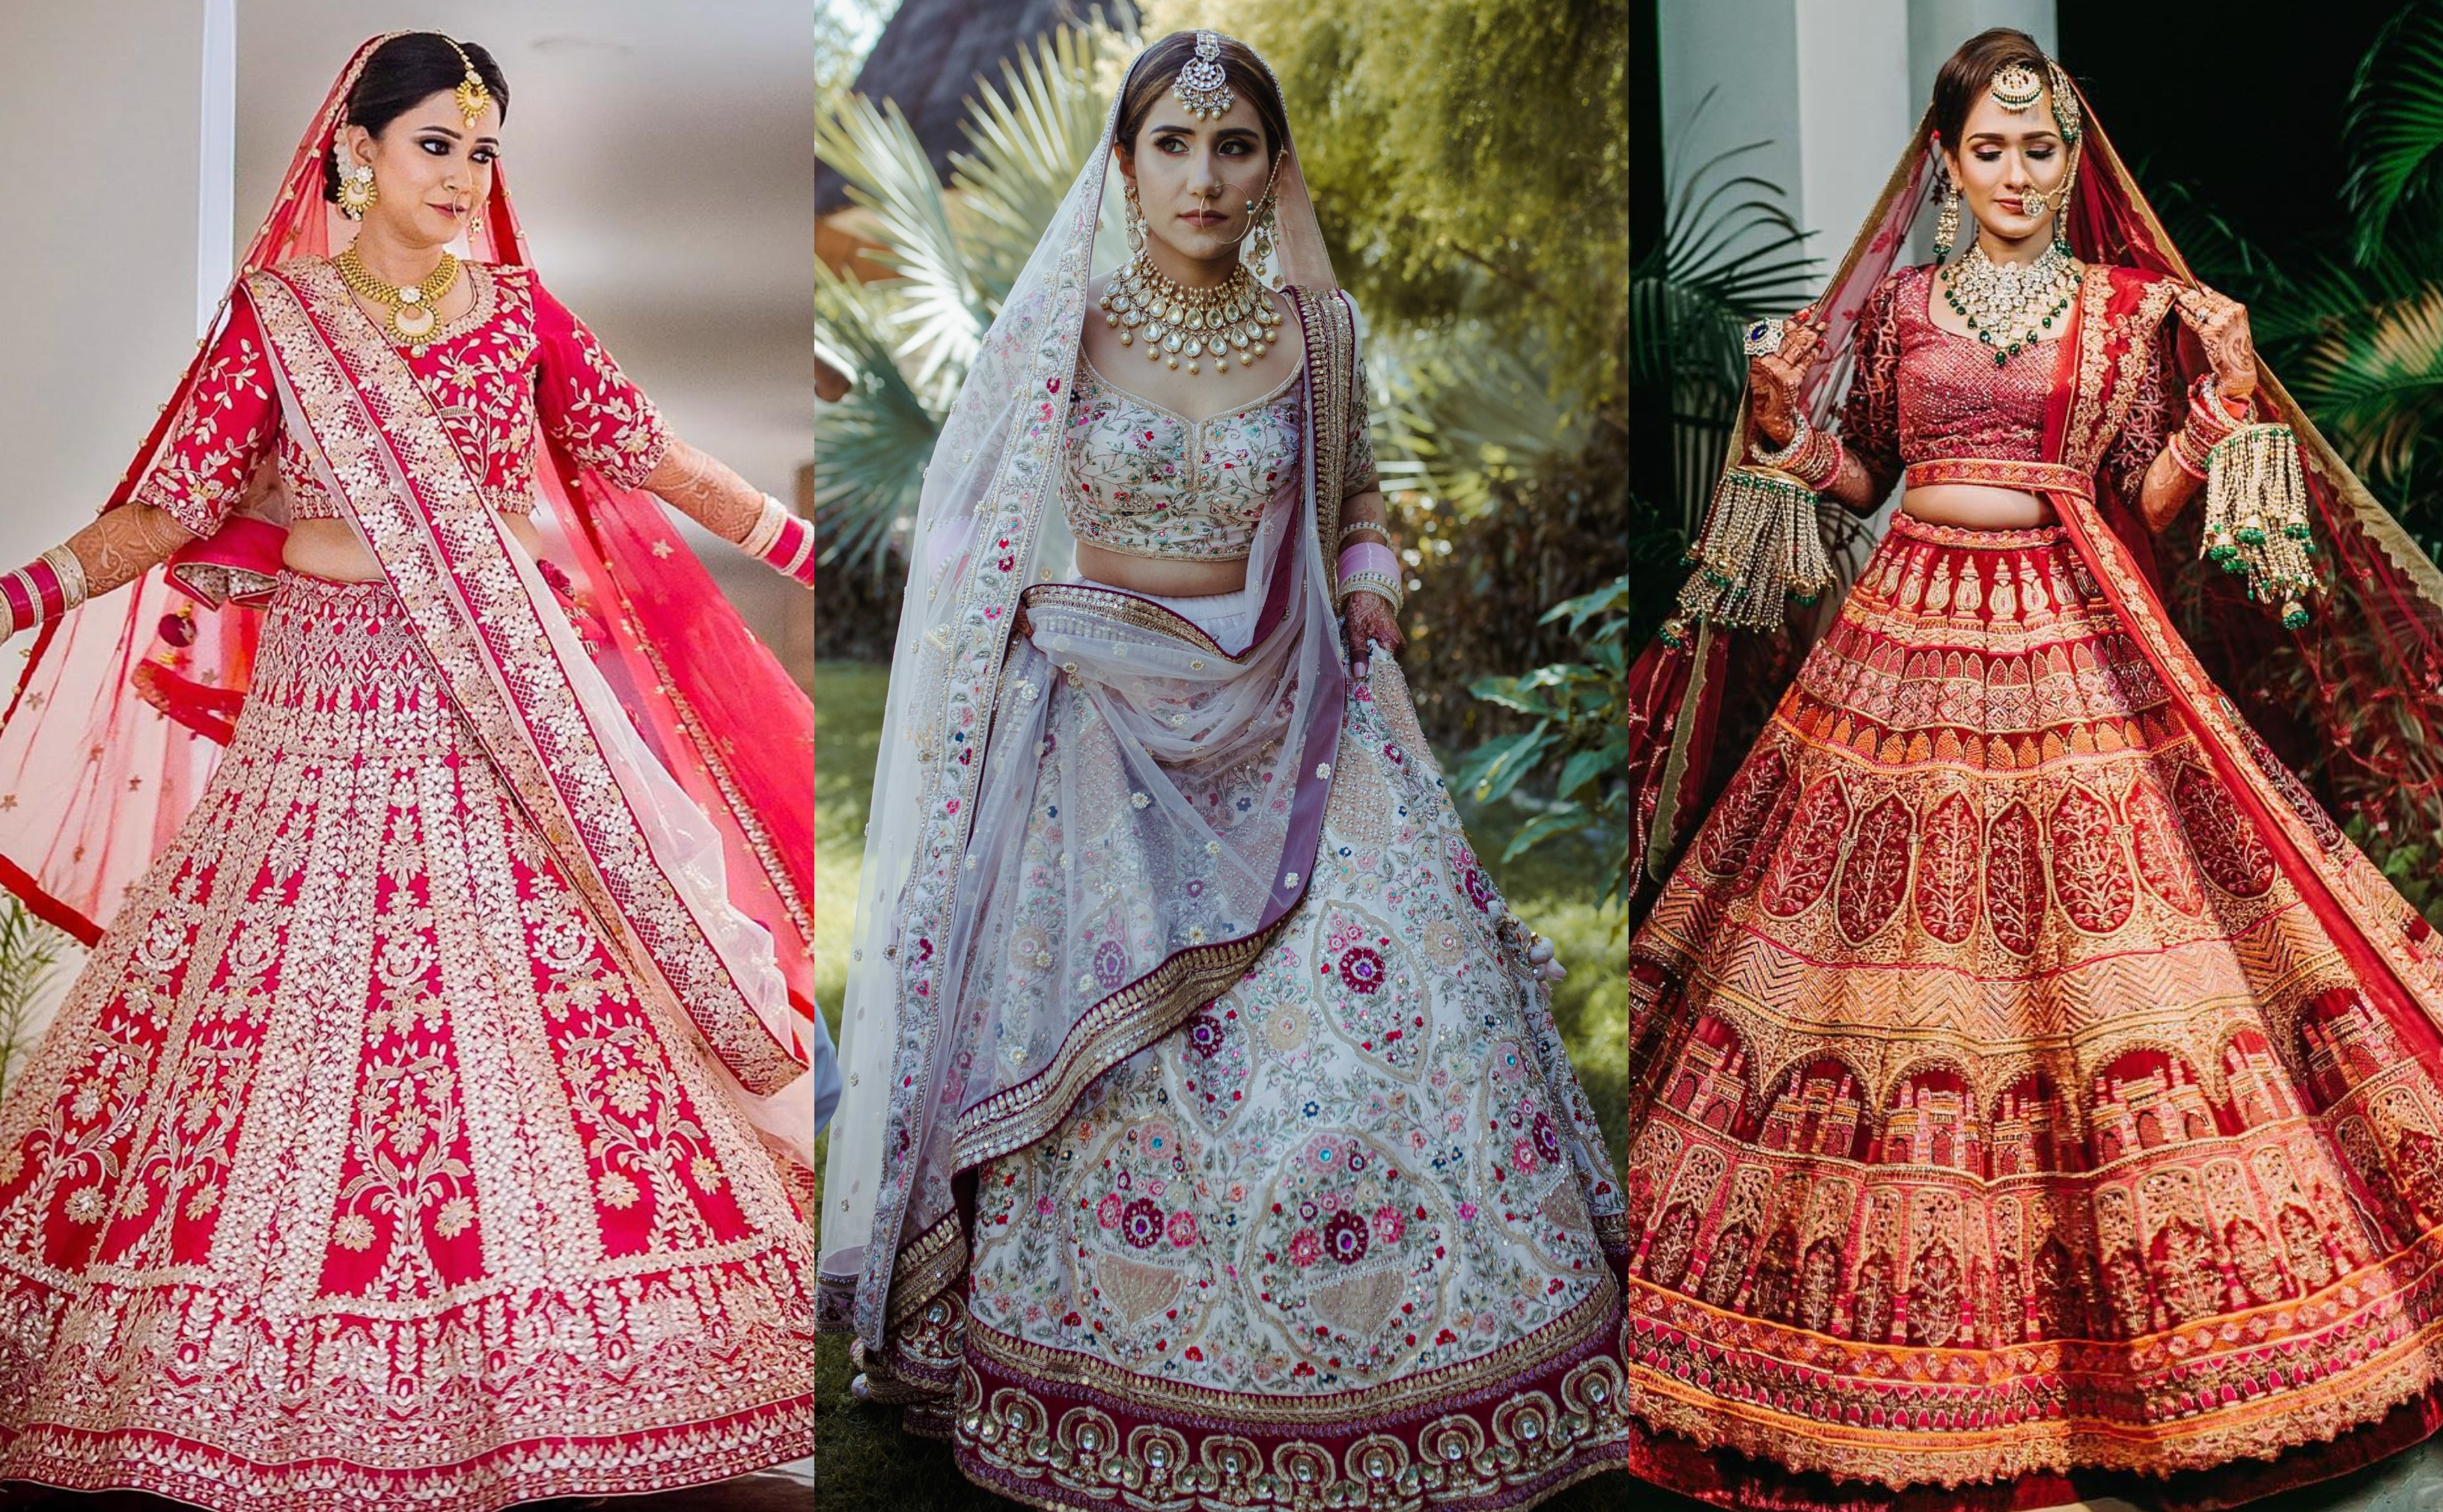 15 Best Bridal Lehenga Shops In Chandni Chowk For Every Budget